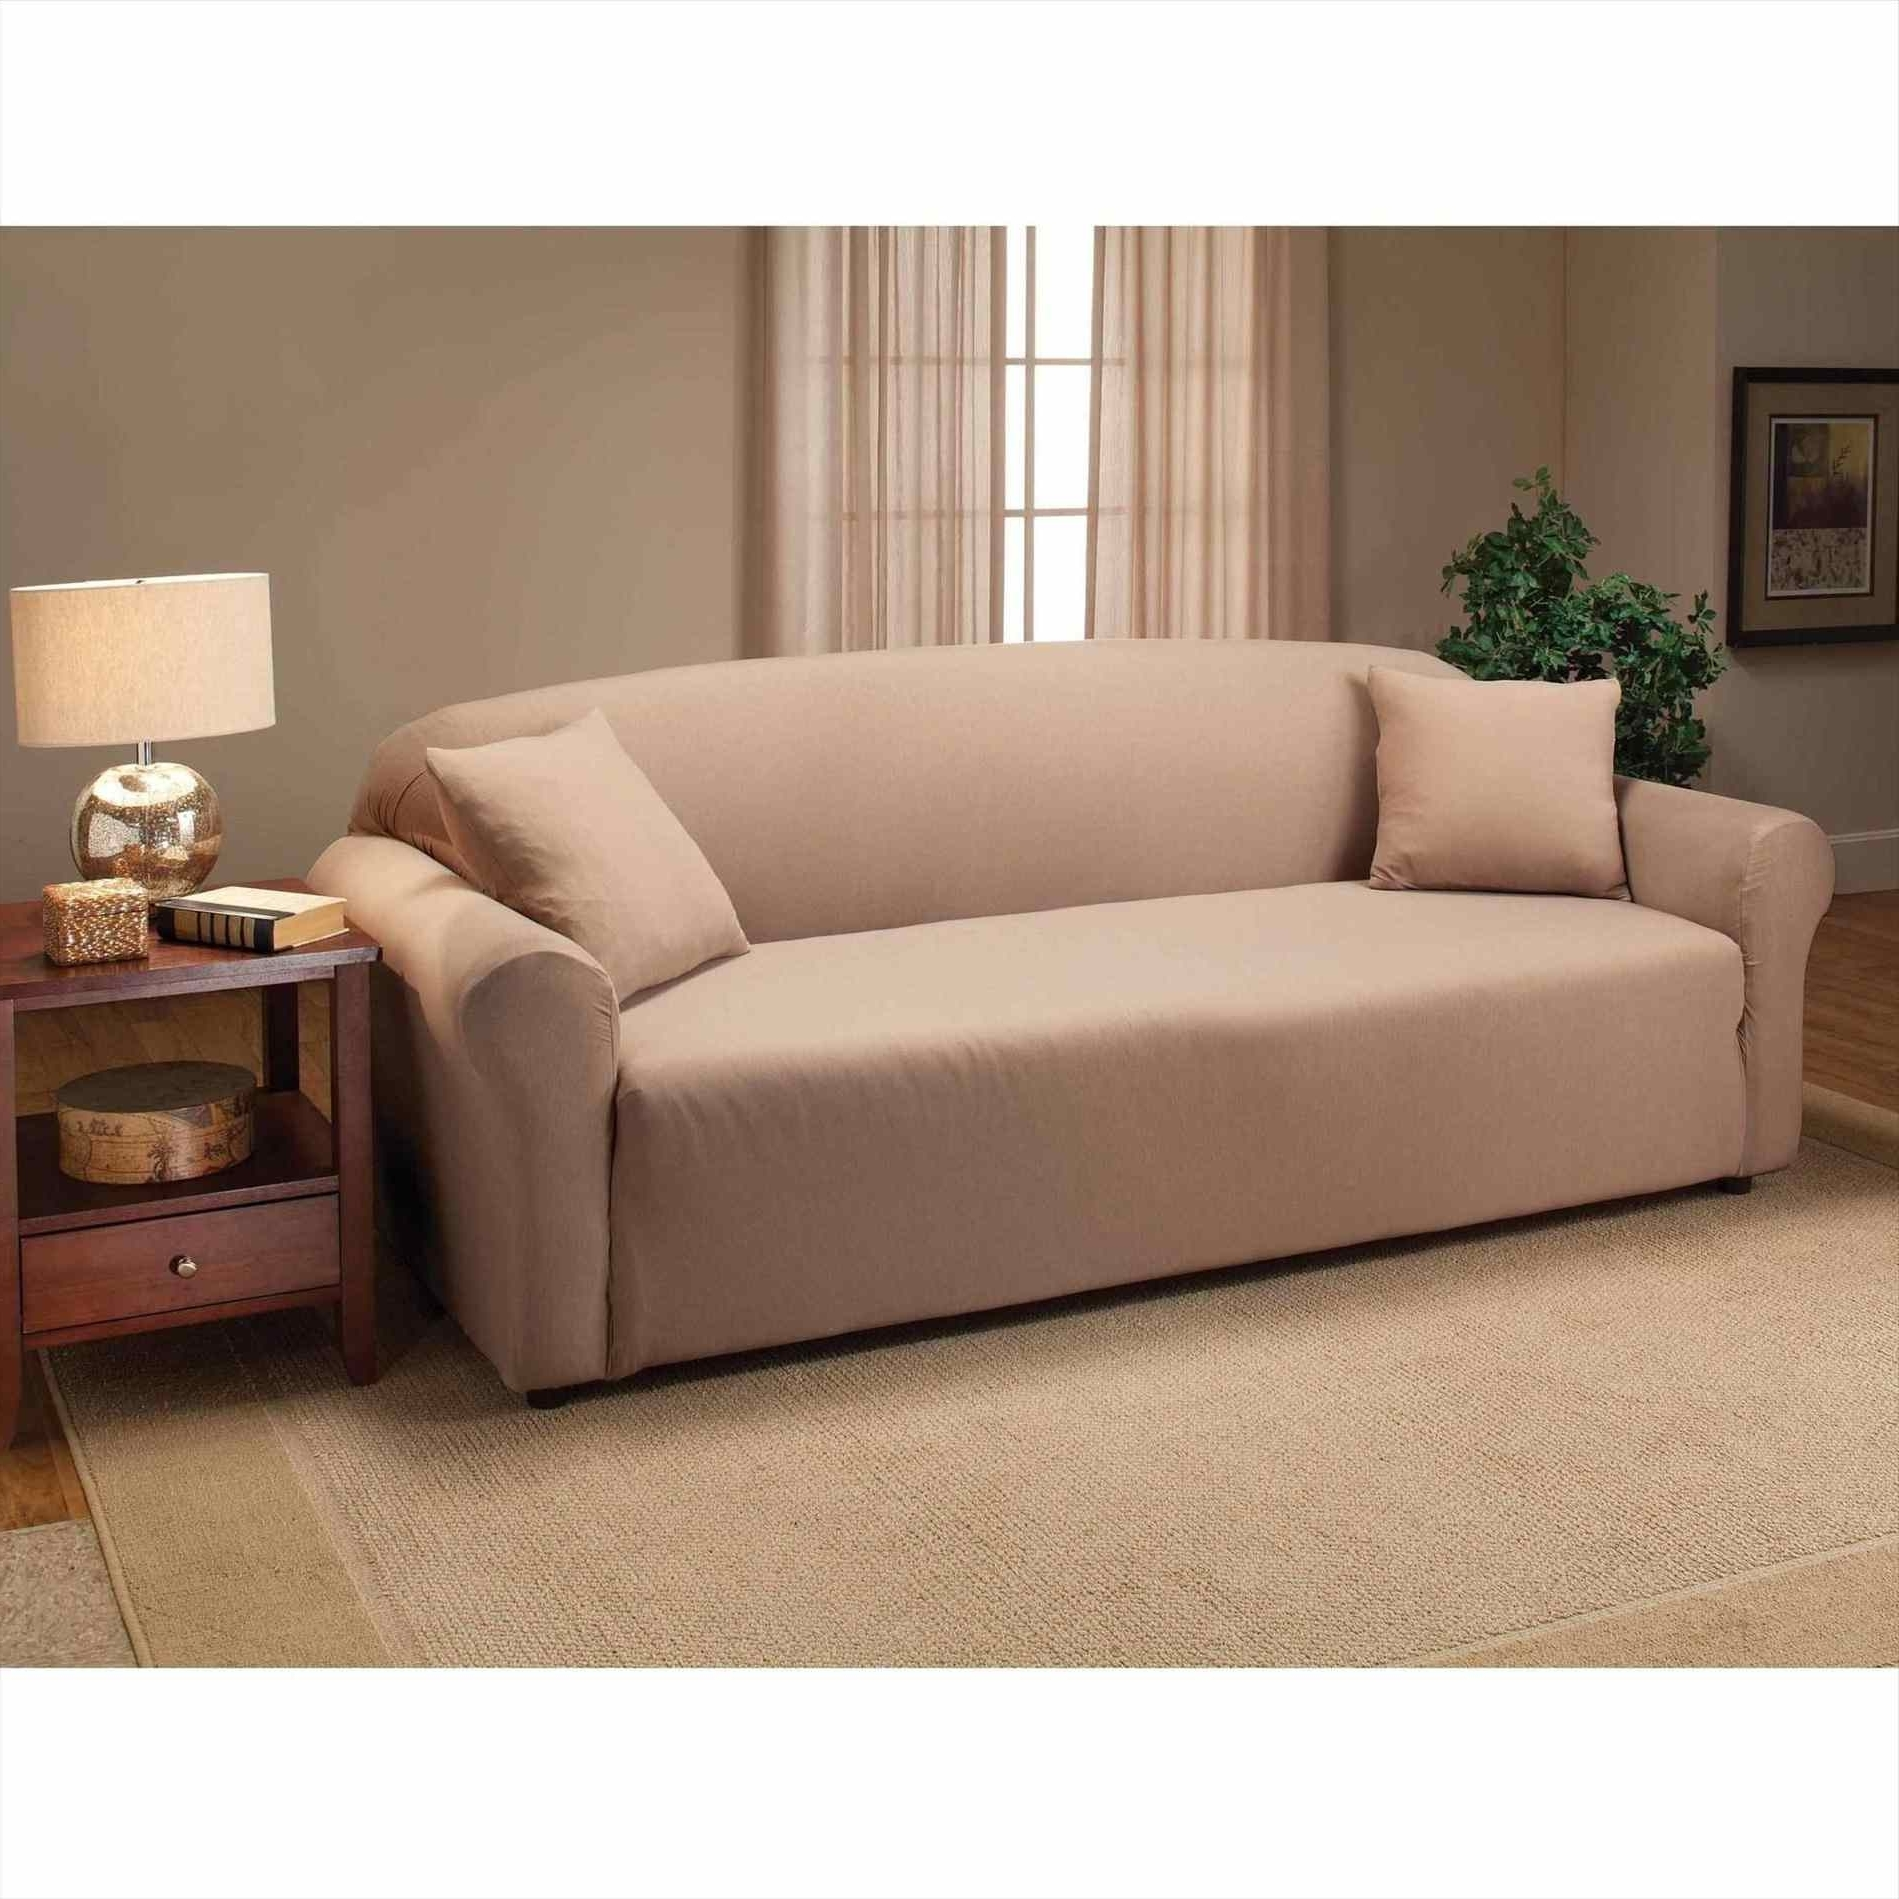 Sofa : Removable Covers Sofa Ideas Traditional Fabric Seater Cover With Regard To Favorite Sofas With Removable Covers (View 11 of 20)